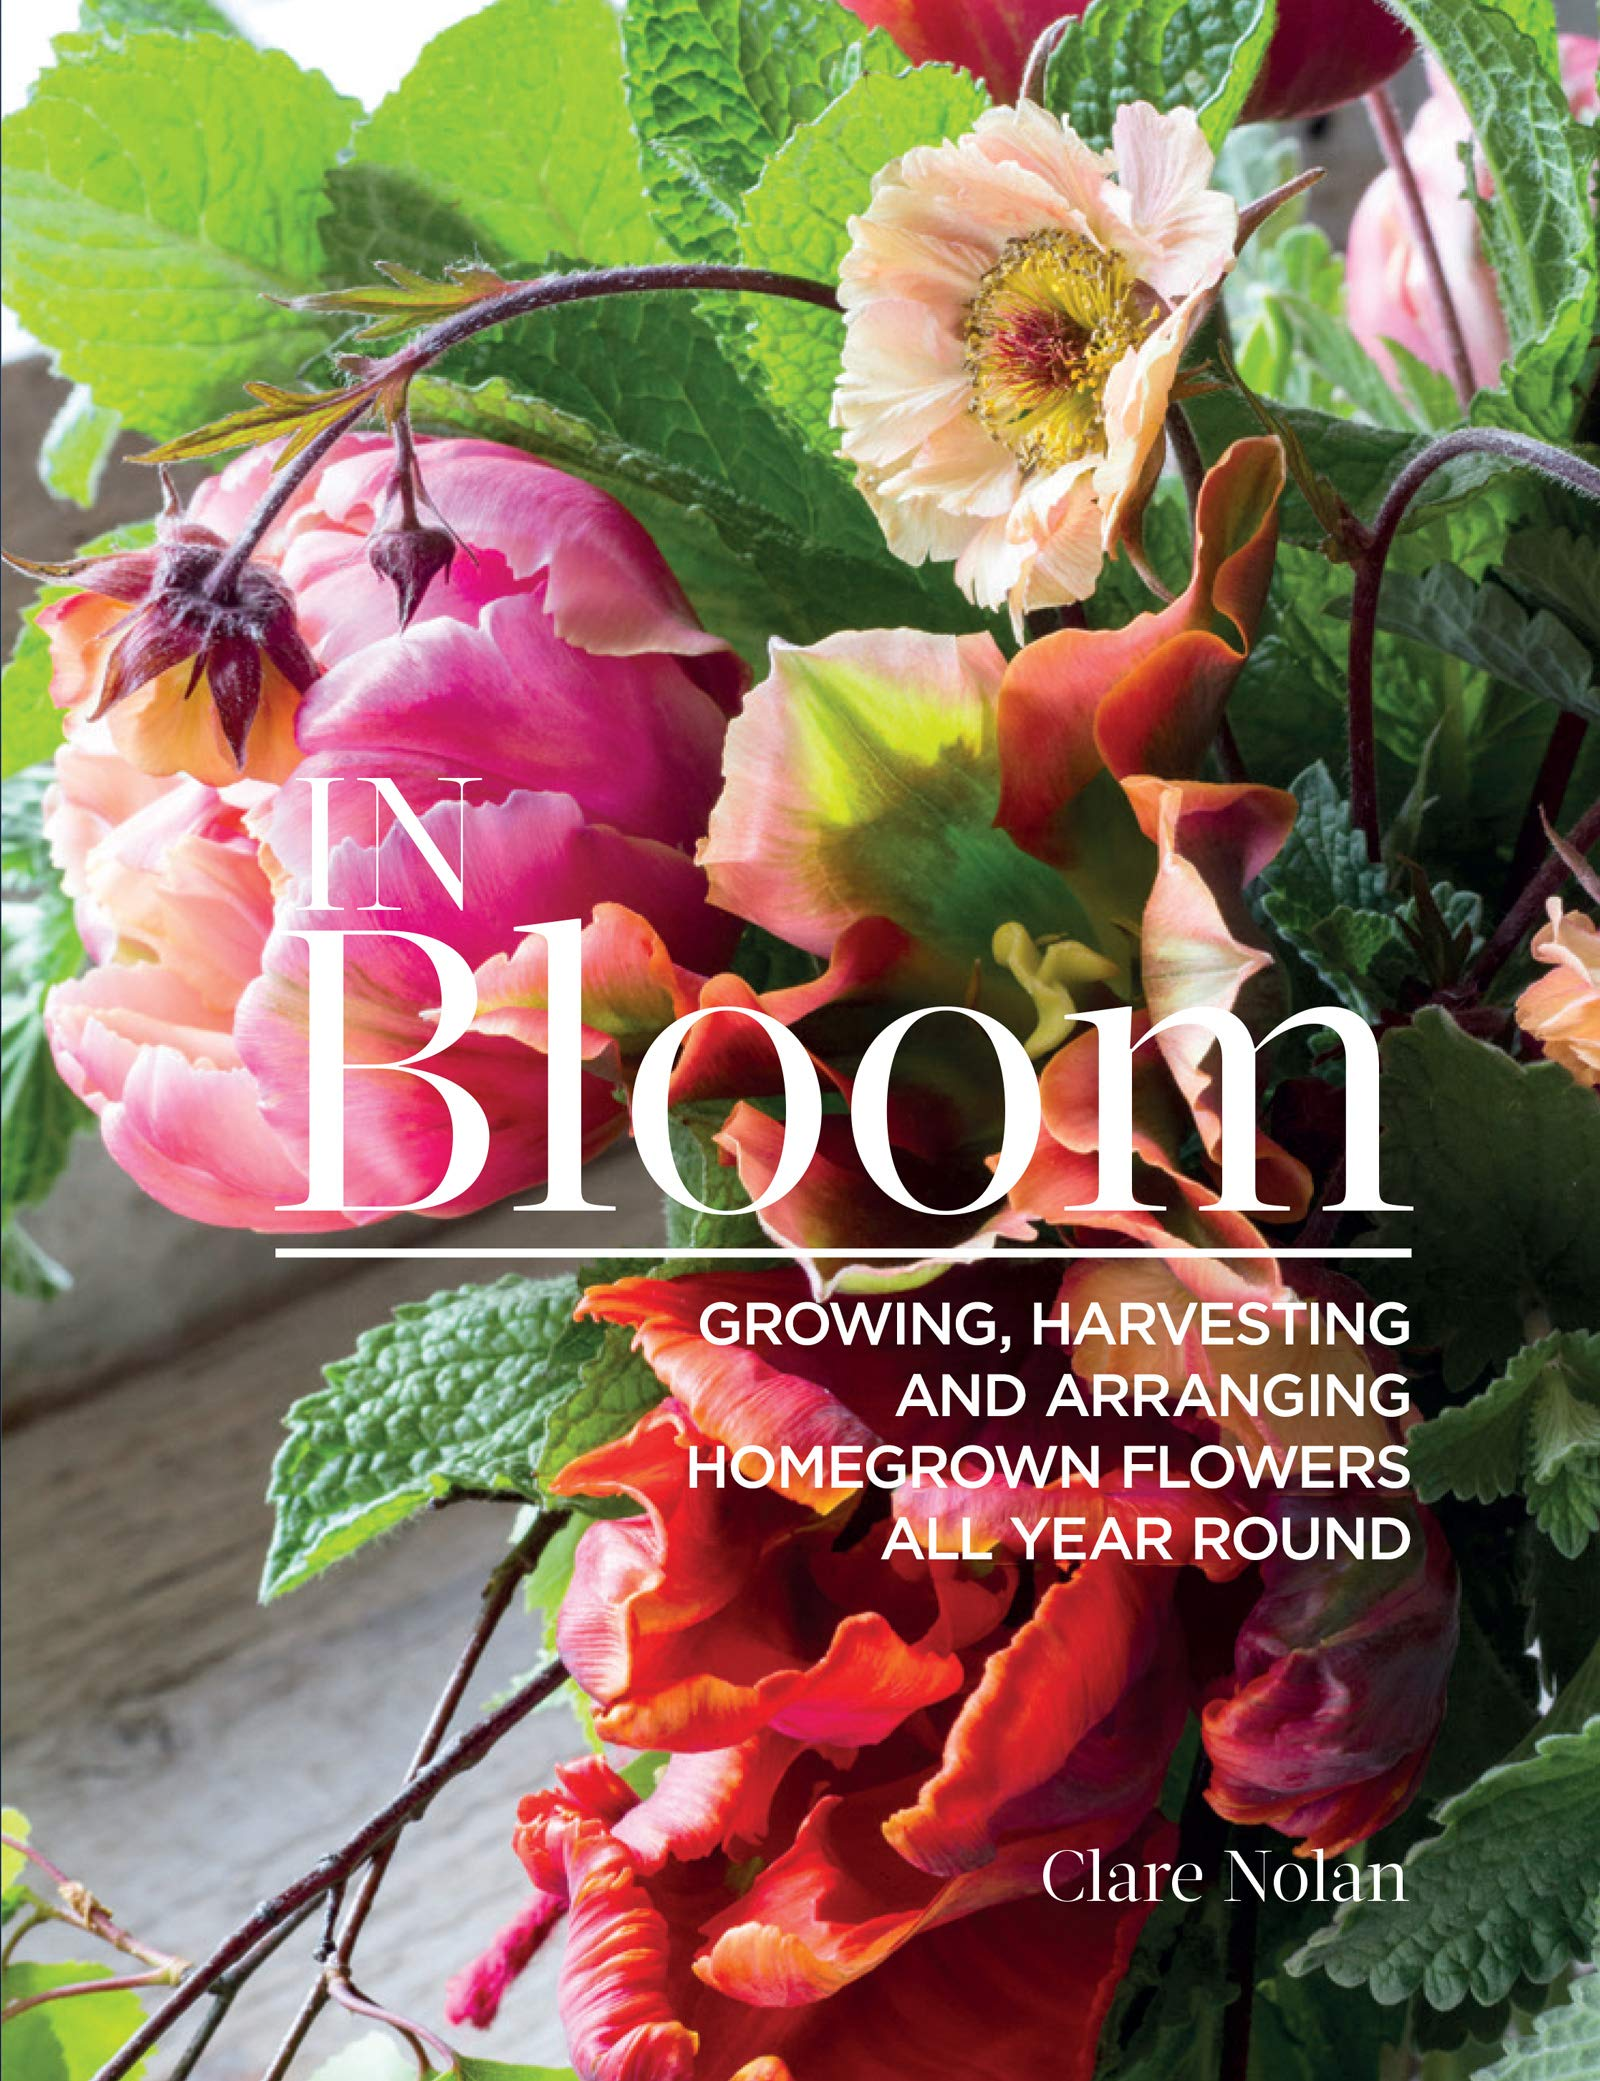 In Bloom Growing Harvesting And Arranging Homegrown Flowers All